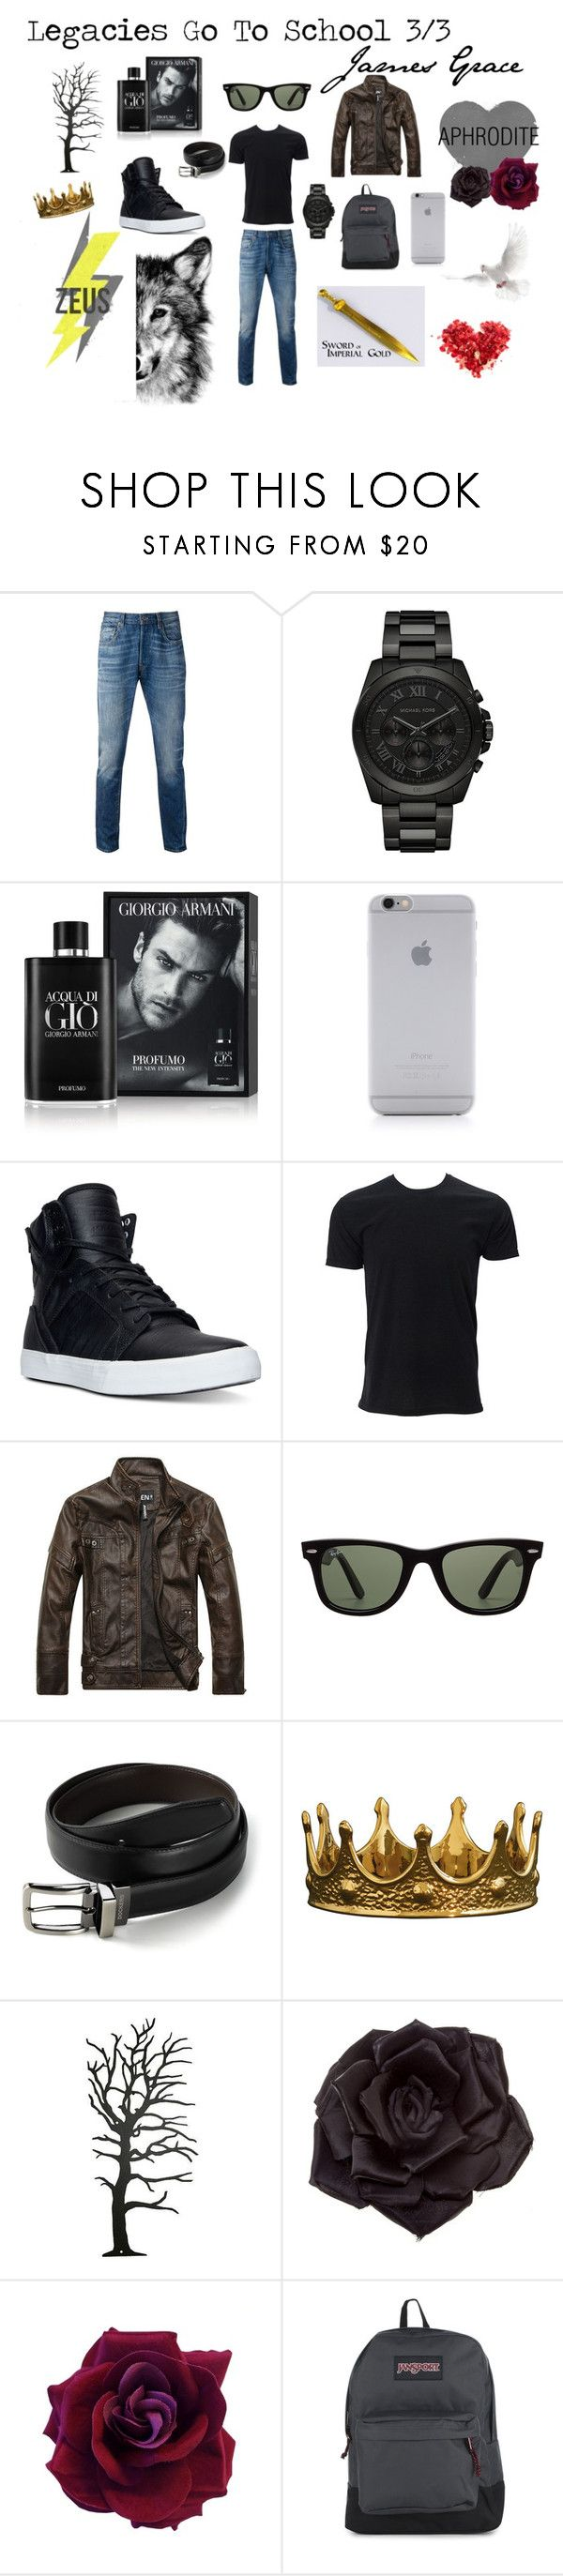 """Legacies Go To School 3/3"" by thedarkestlight ❤ liked on Polyvore featuring Levi's, Michael Kors, Giorgio Armani, Native Union, Supra, Simplex Apparel, Ray-Ban, Dockers, Seletti and Johnny Loves Rosie"